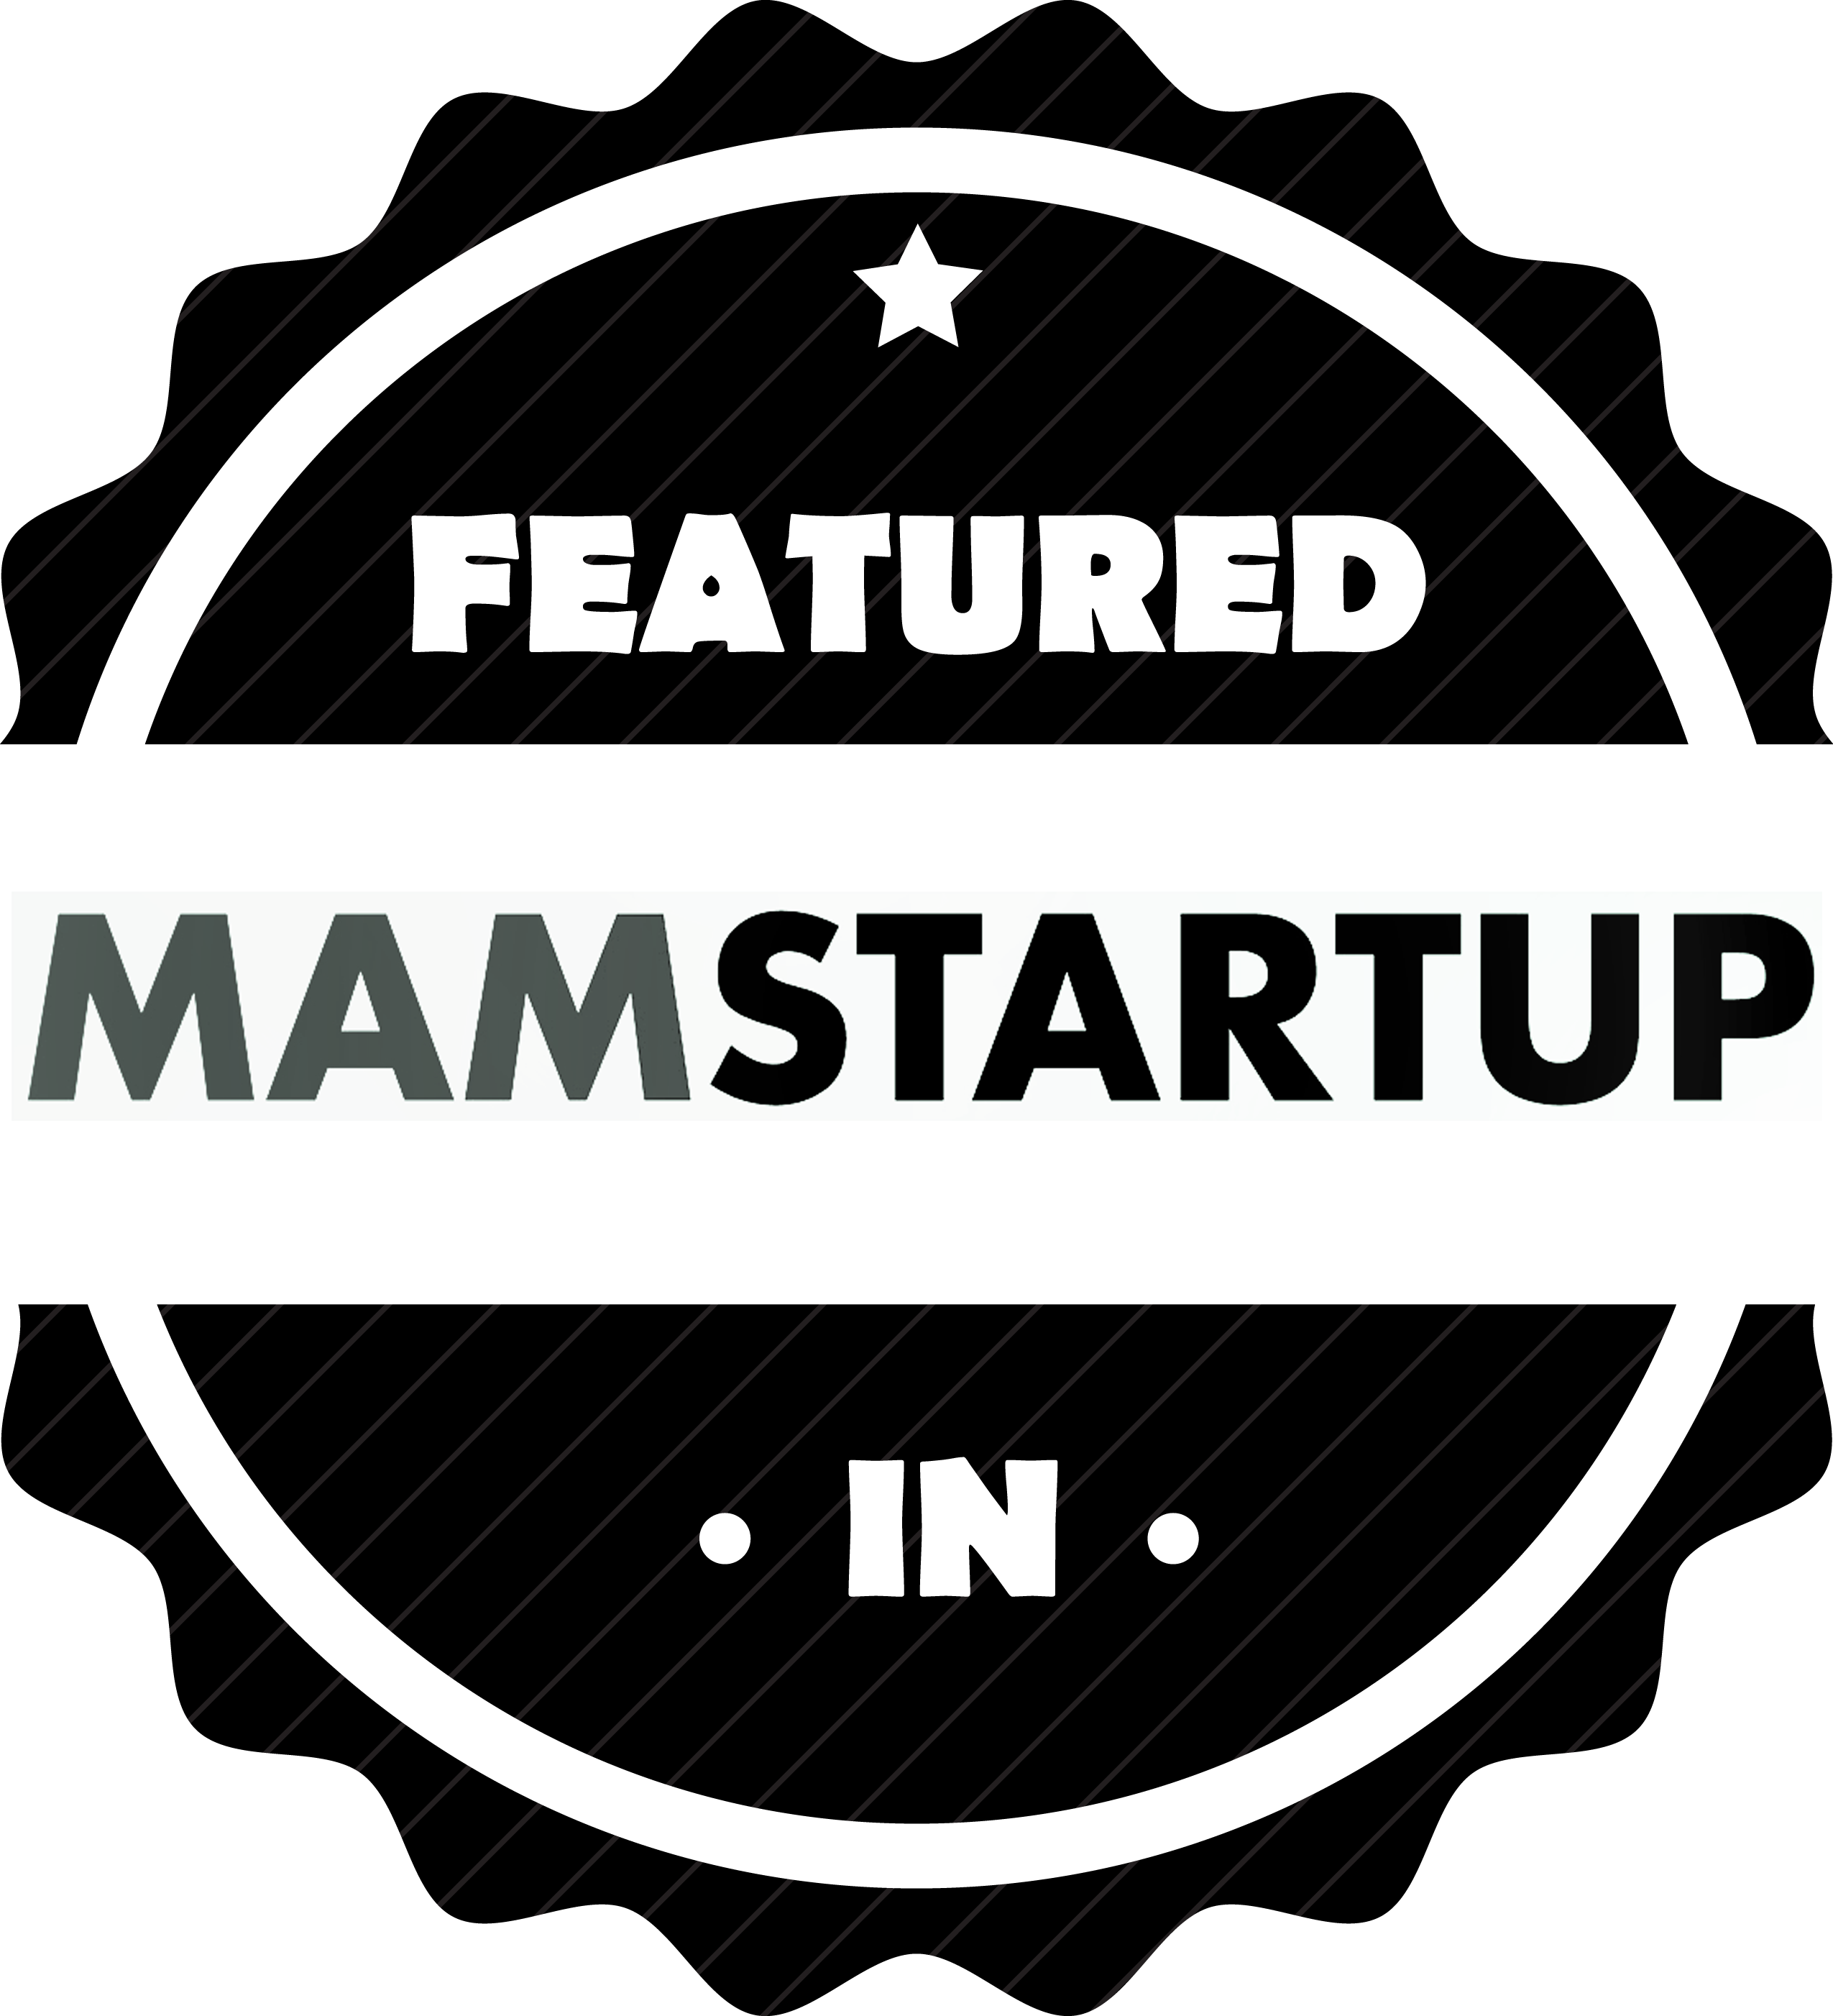 Article also aviable on Mam Startup